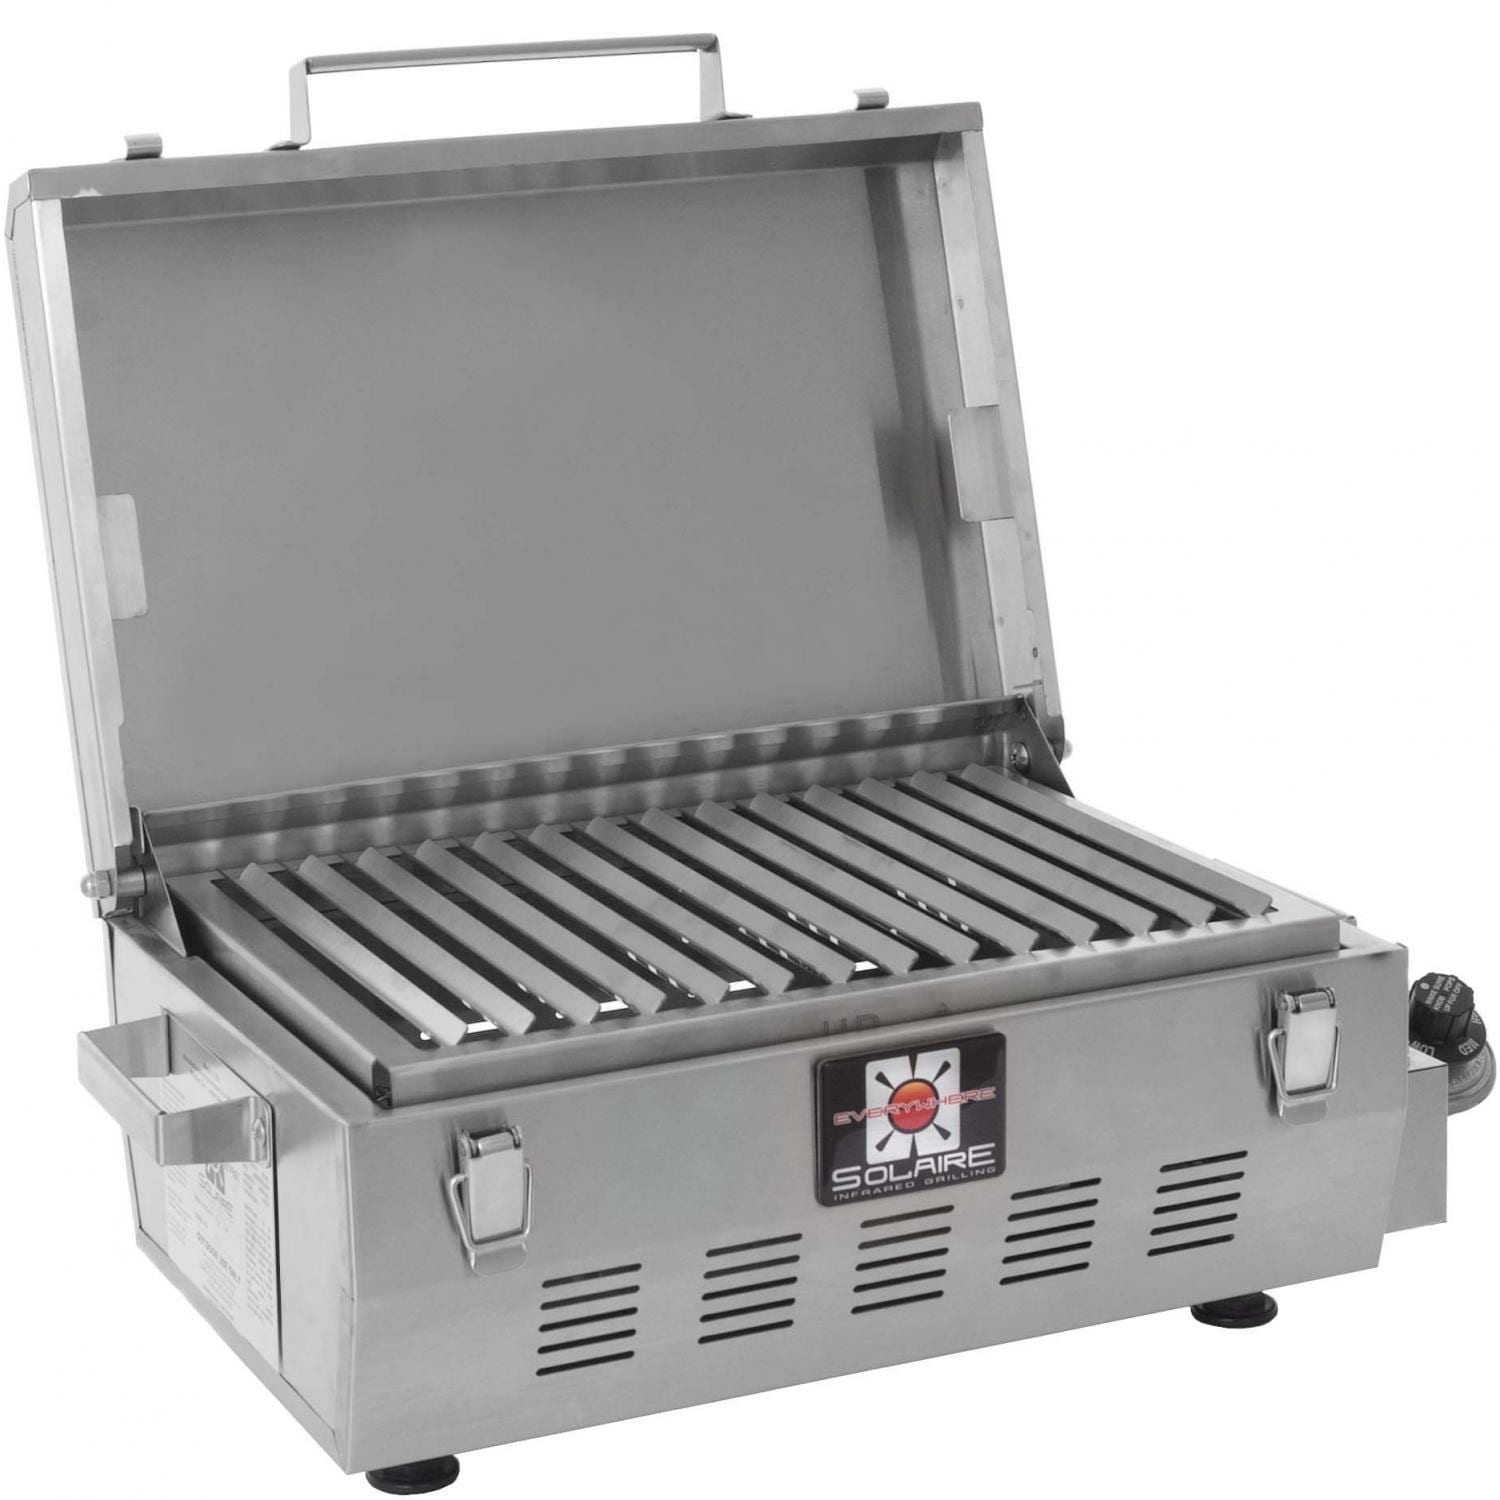 Solaire Everywhere Portable Infrared Propane Gas Grill   SOL EV17A : BBQ  Guys